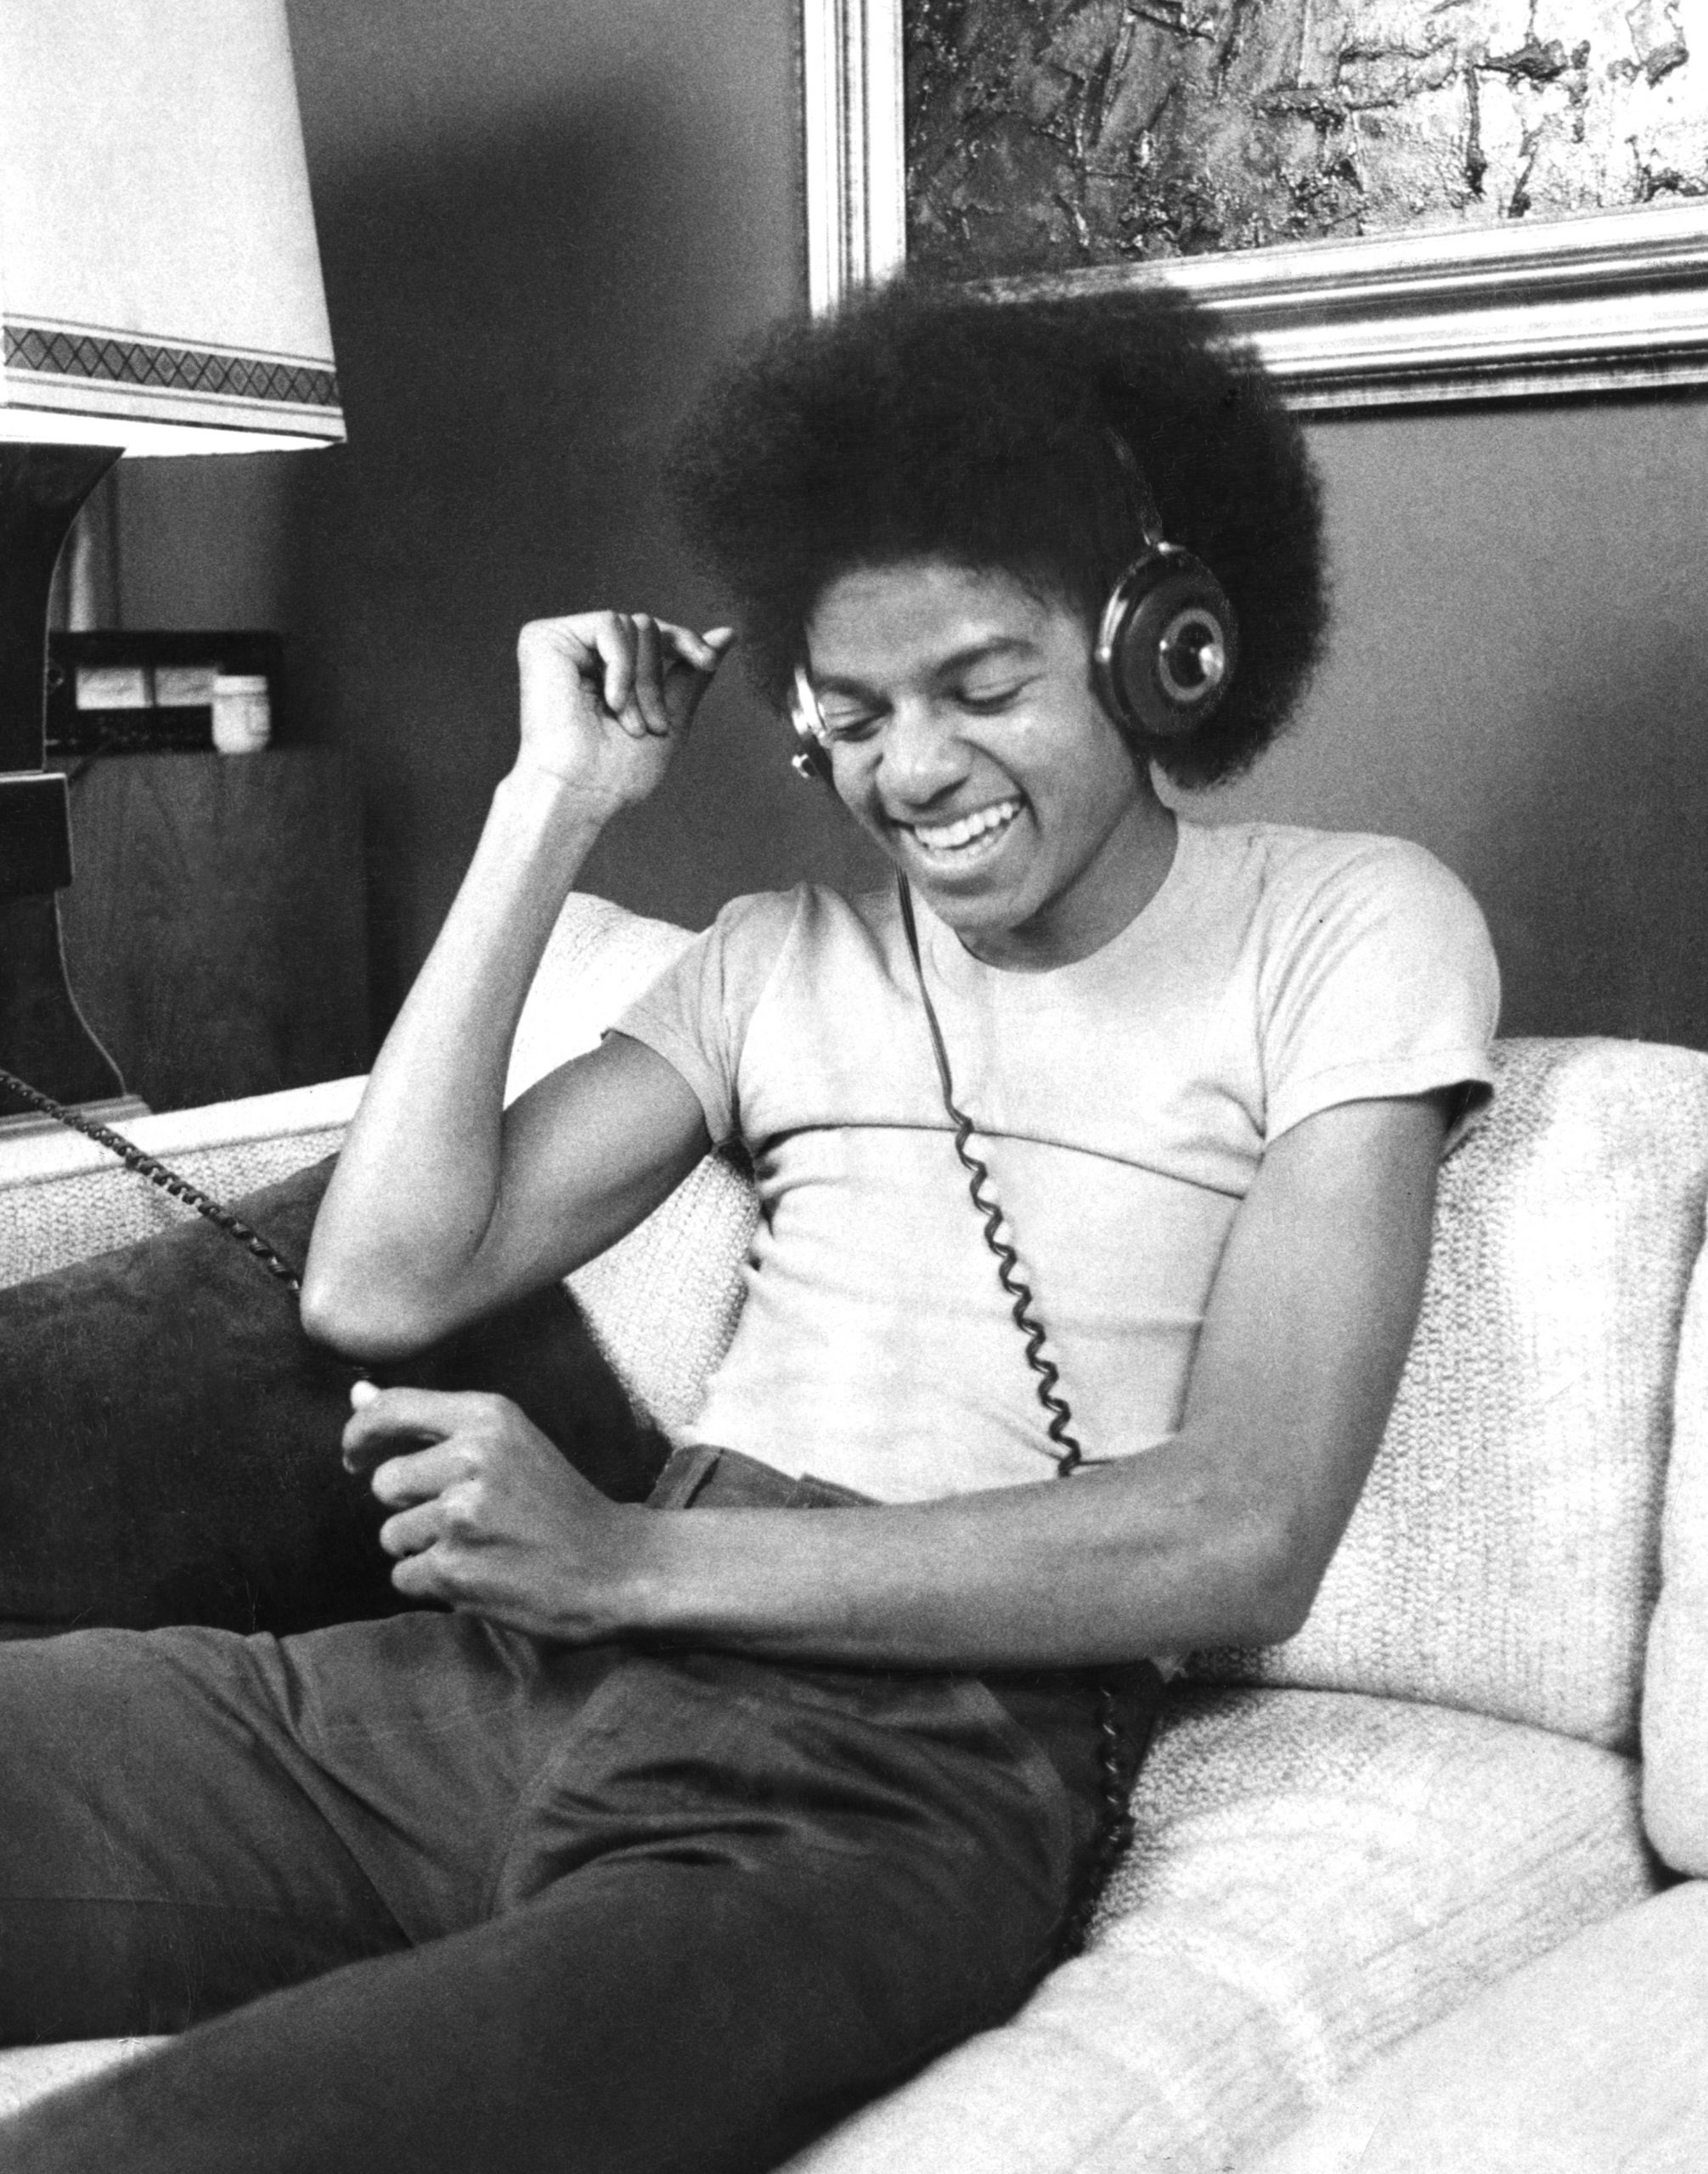 Michael Jackson, the Lead singer of EPIC Recording group The